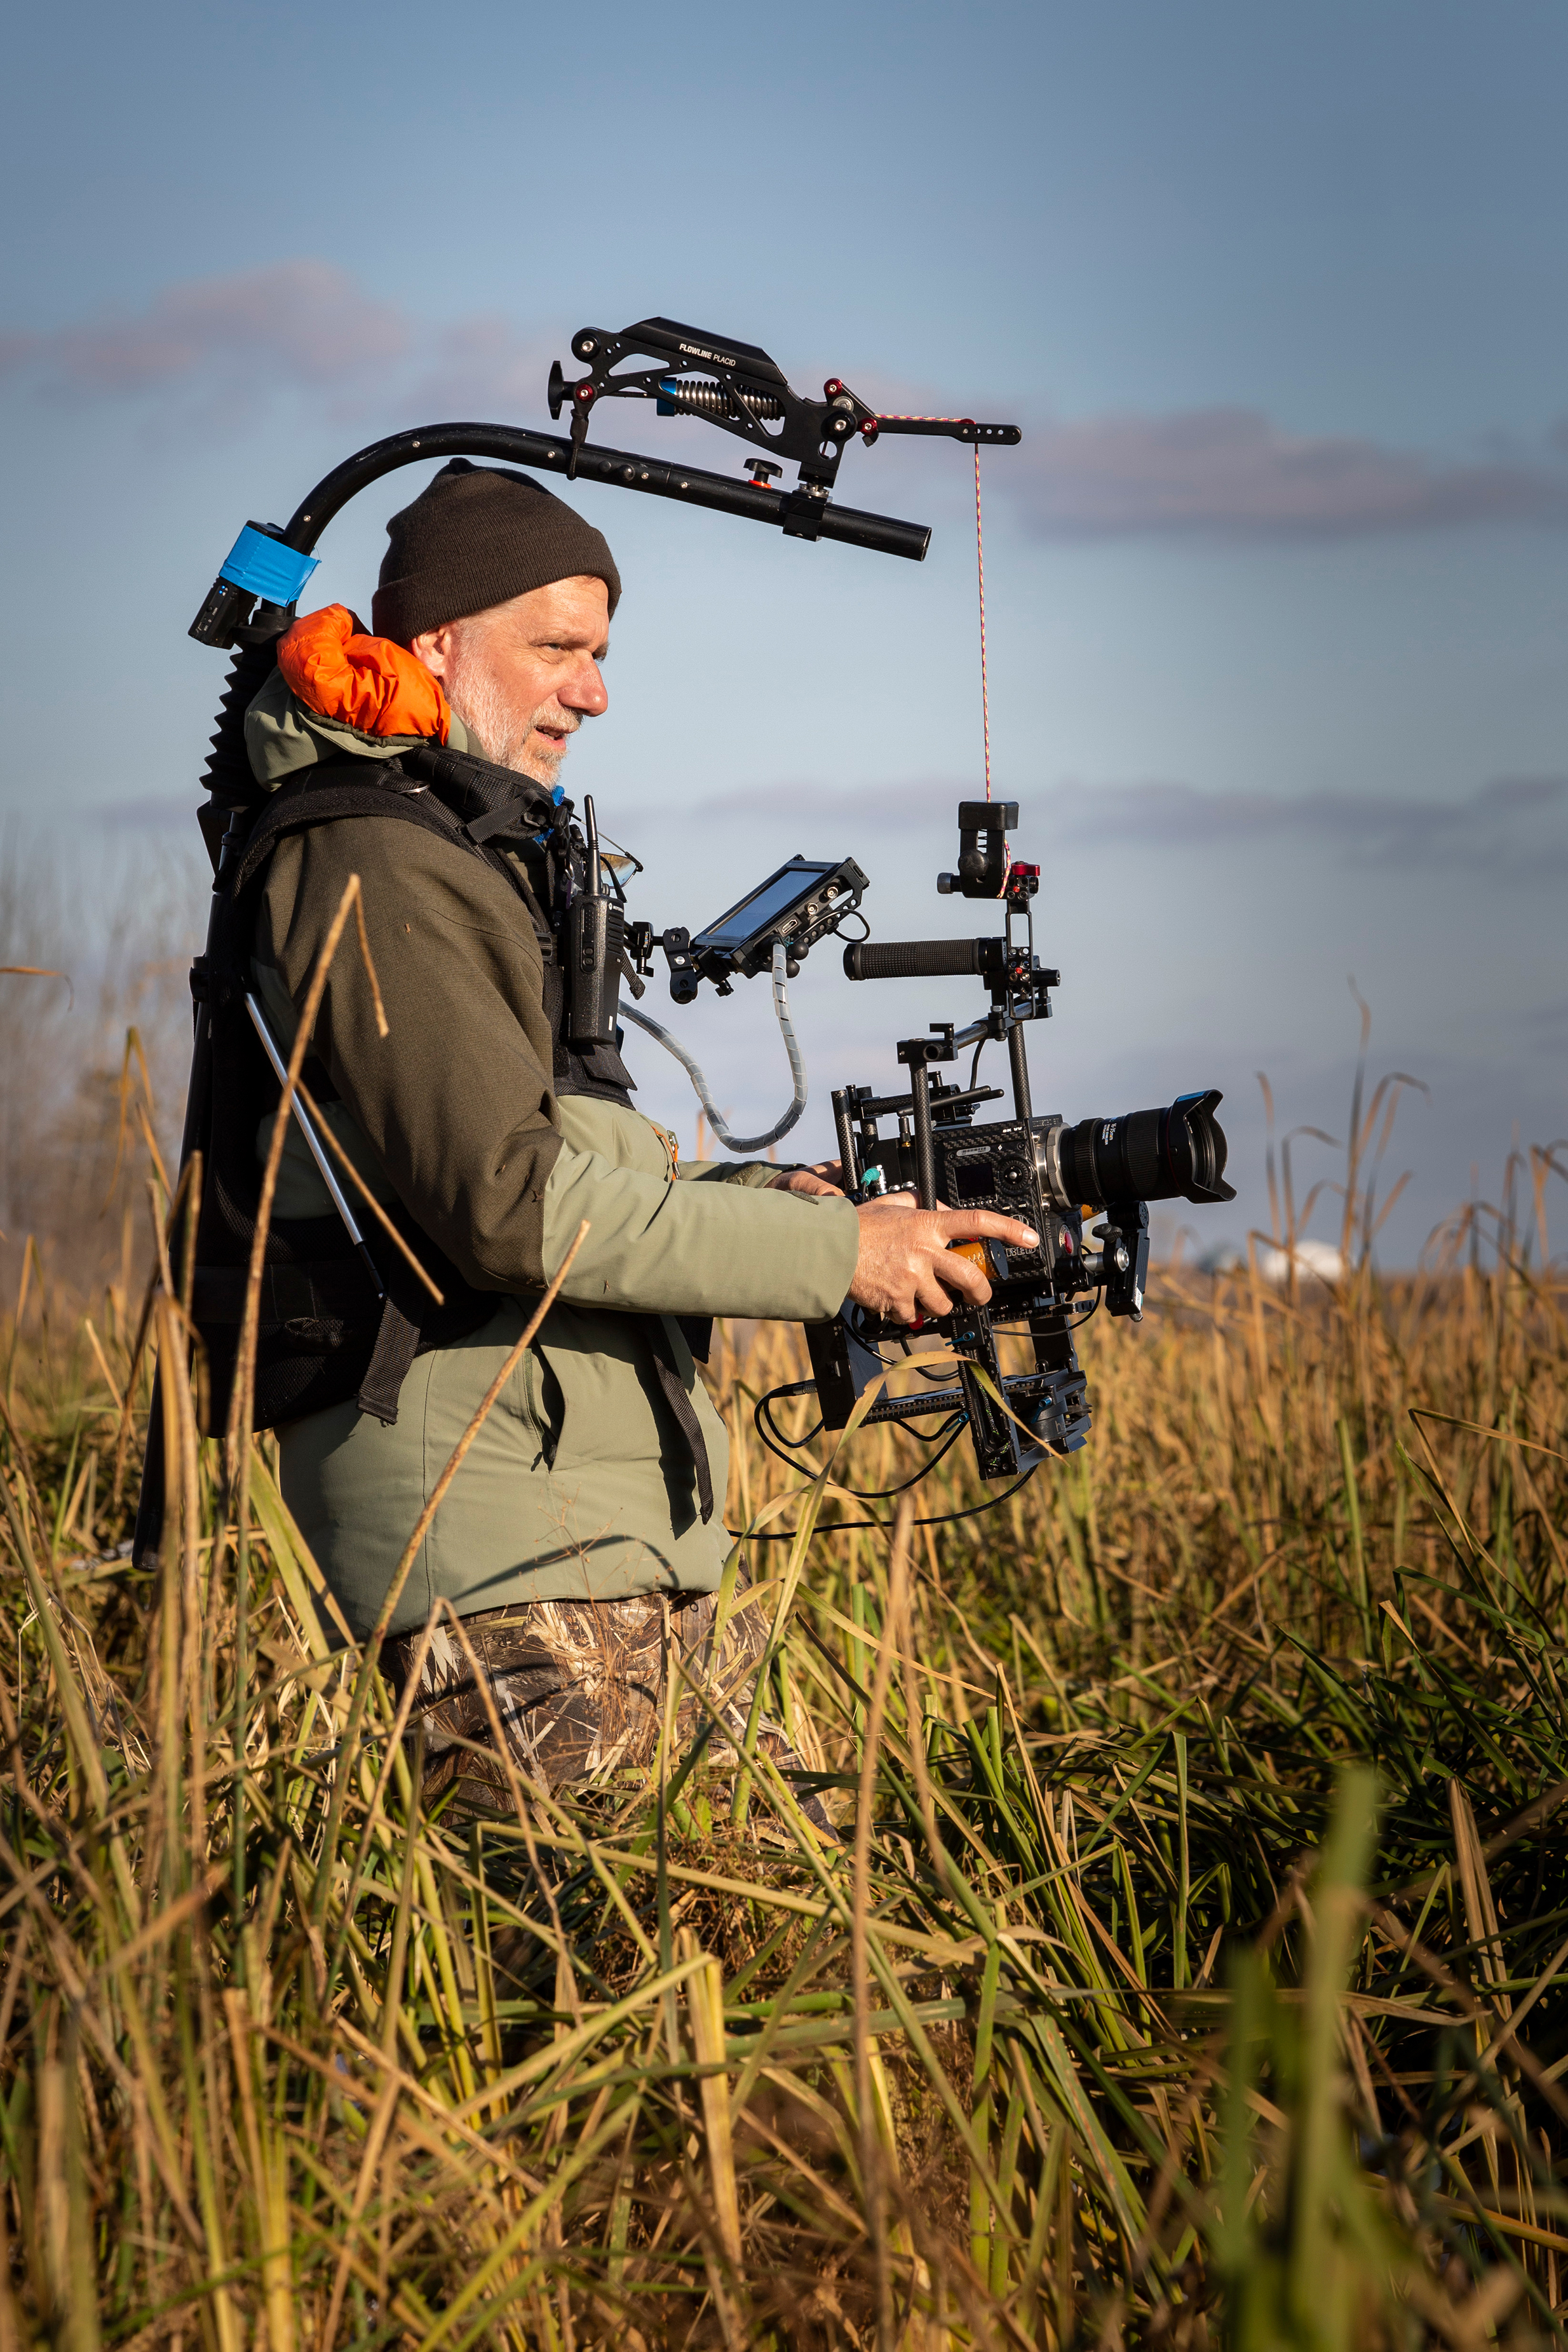 Filming with a steadycam. Photo courtesy of the Max McGraw Wildlife Foundation